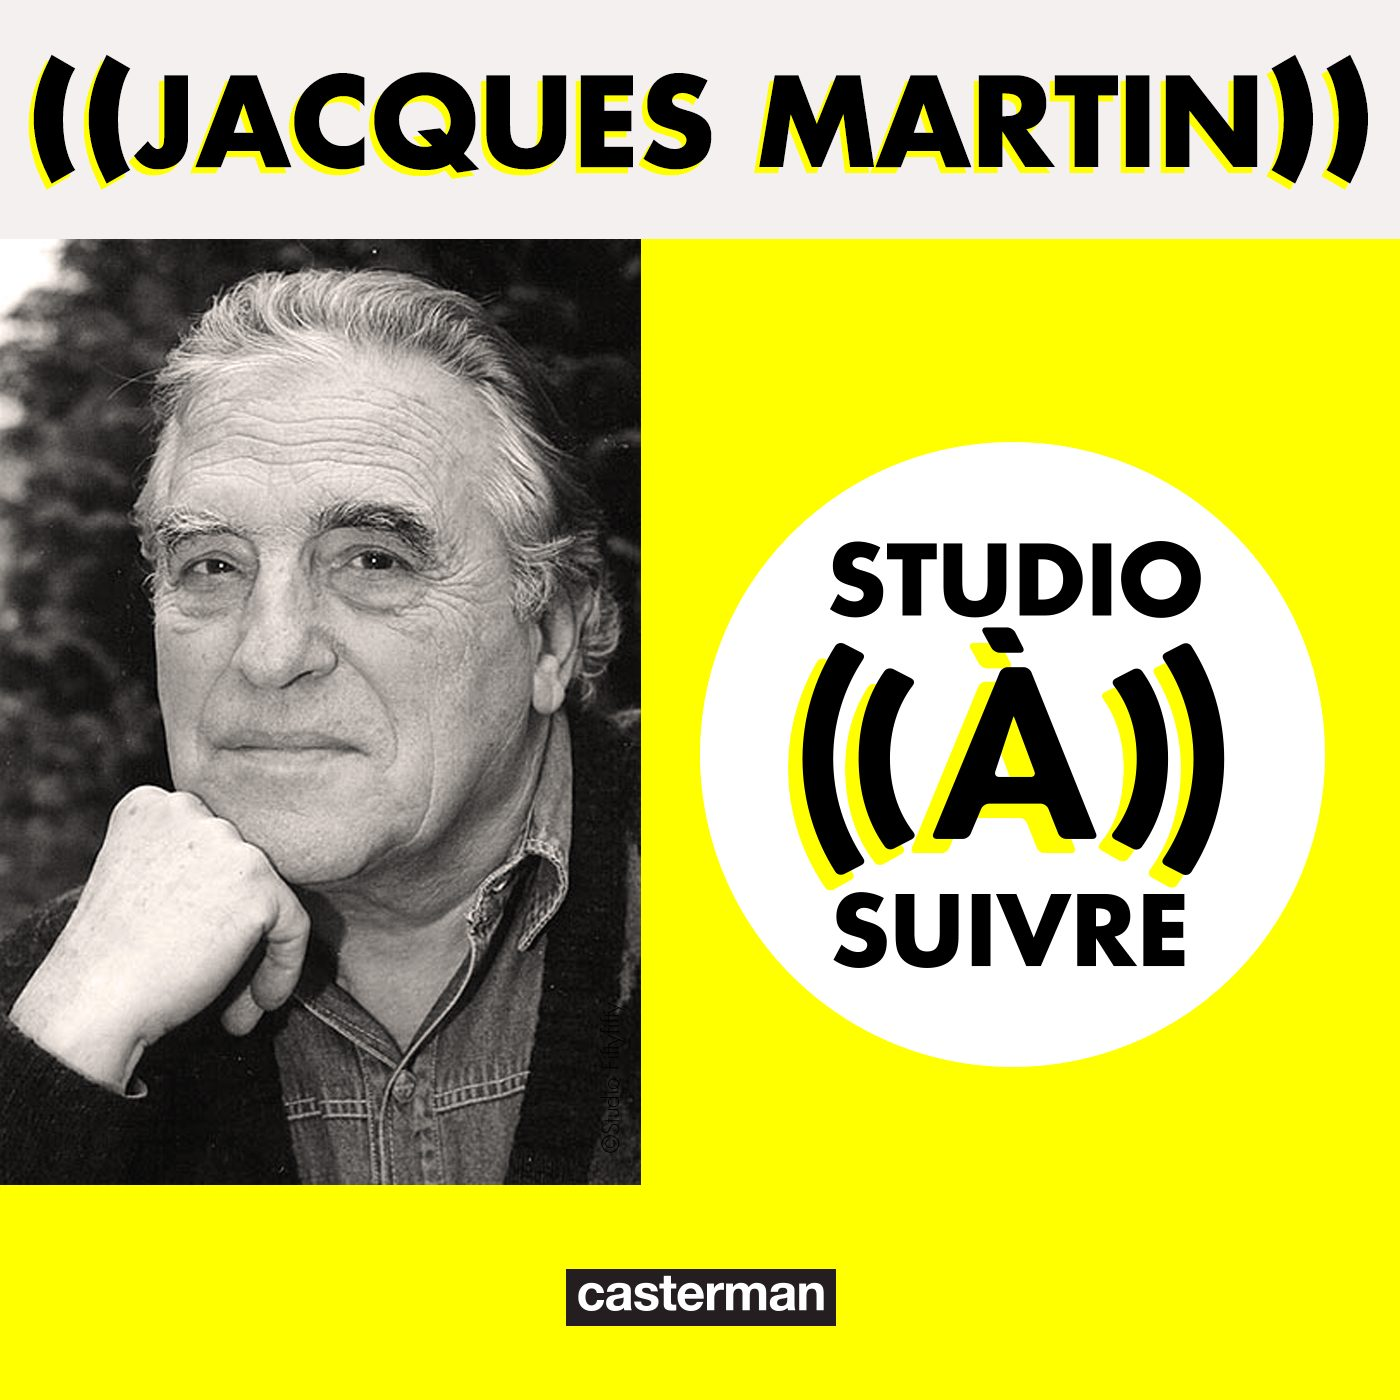 Jacques Martin, hommage